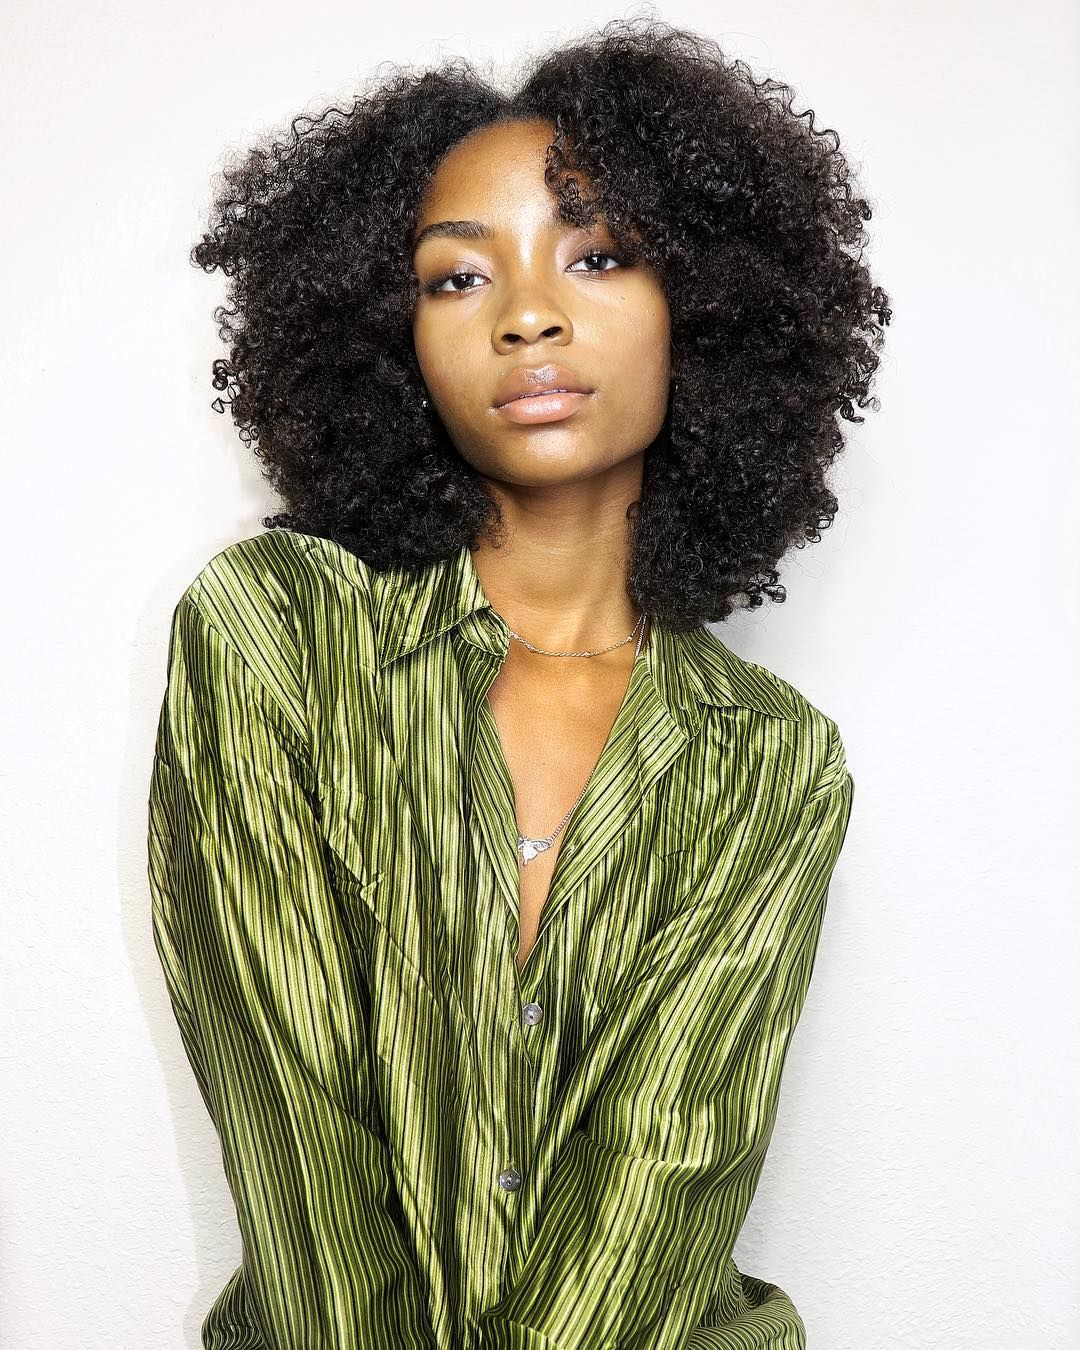 How to moisturize black natural hair